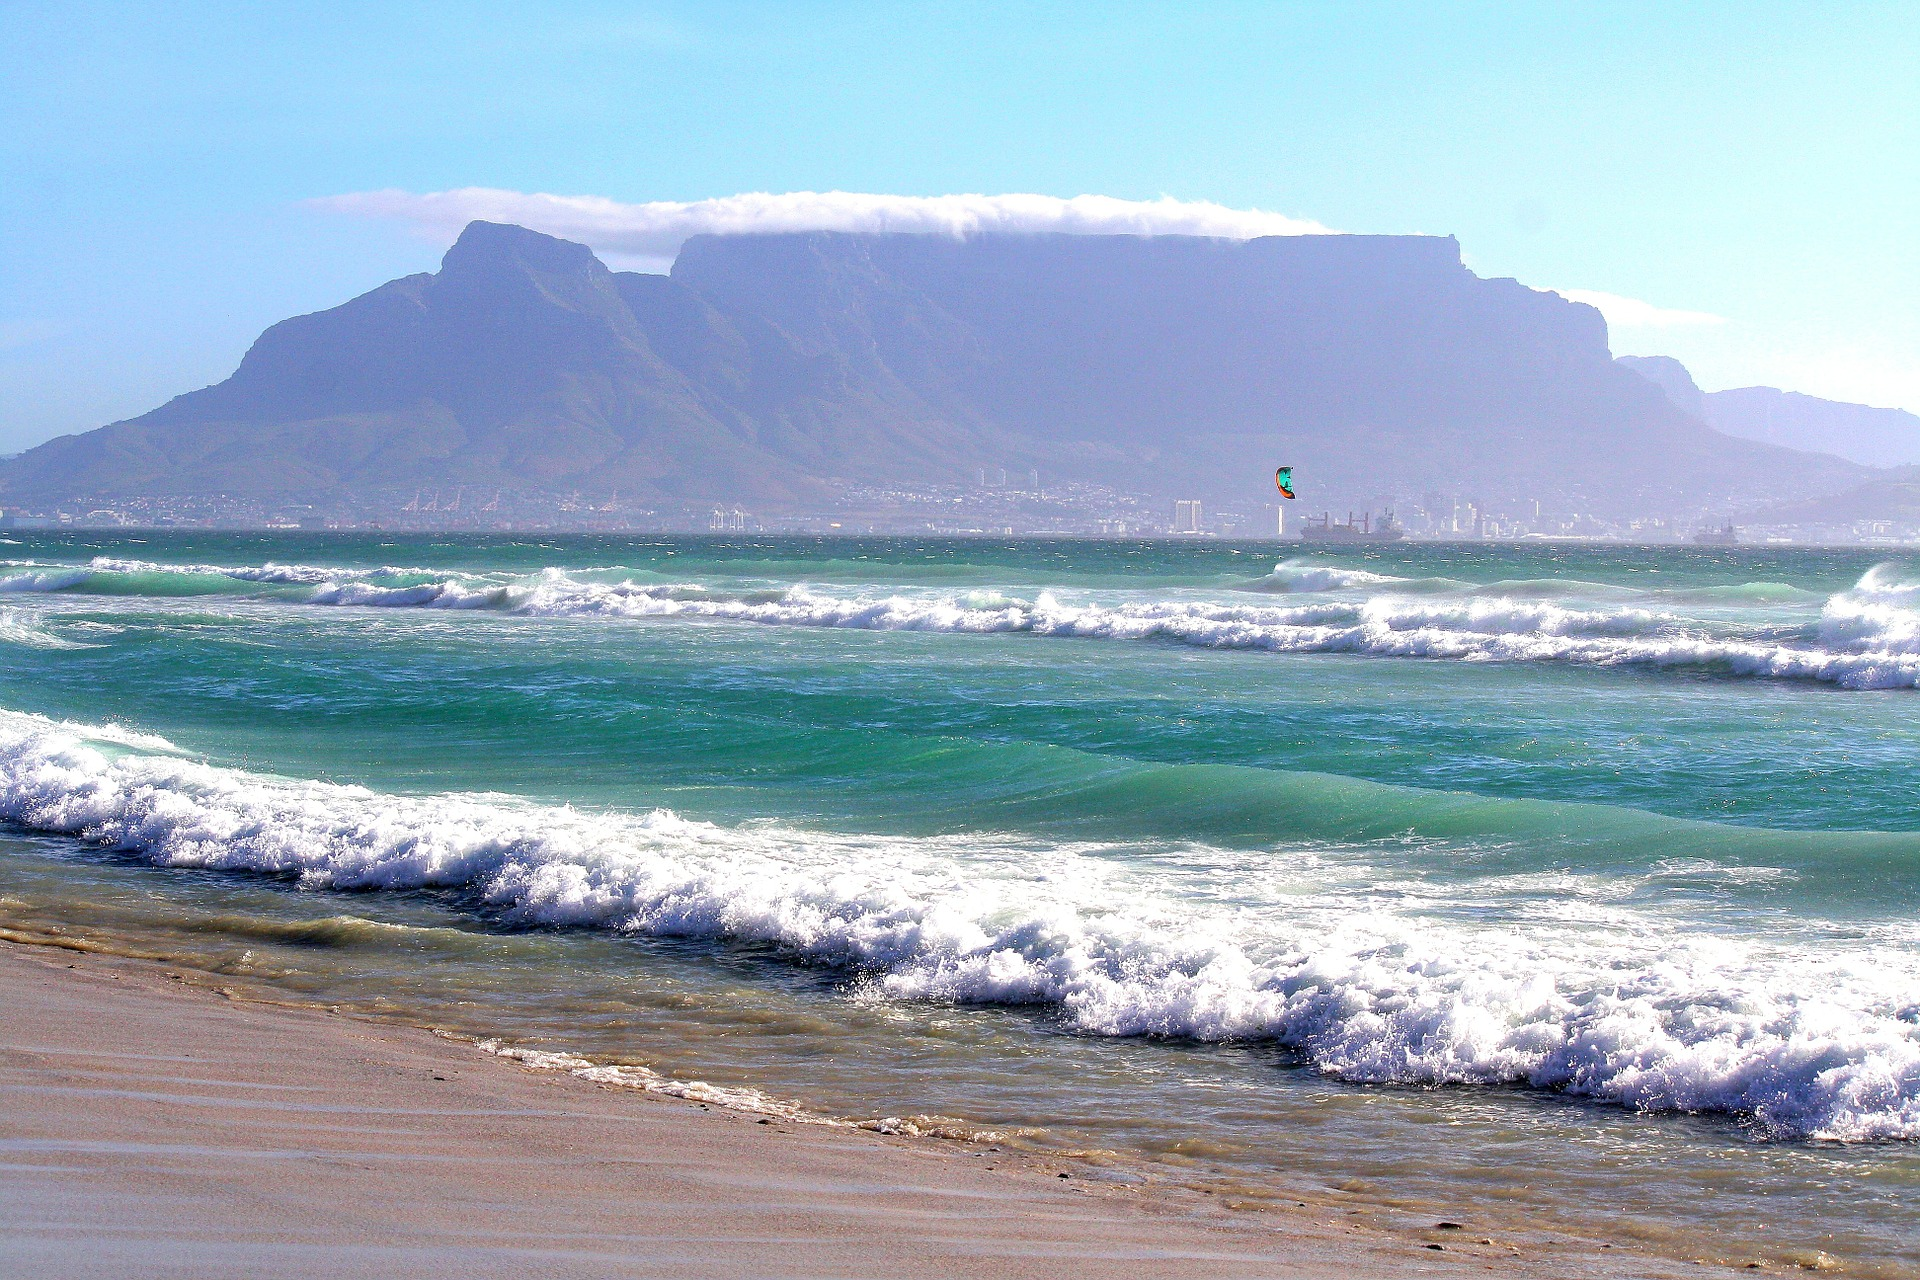 Cape Town, Oxidane, the water treatment product, company